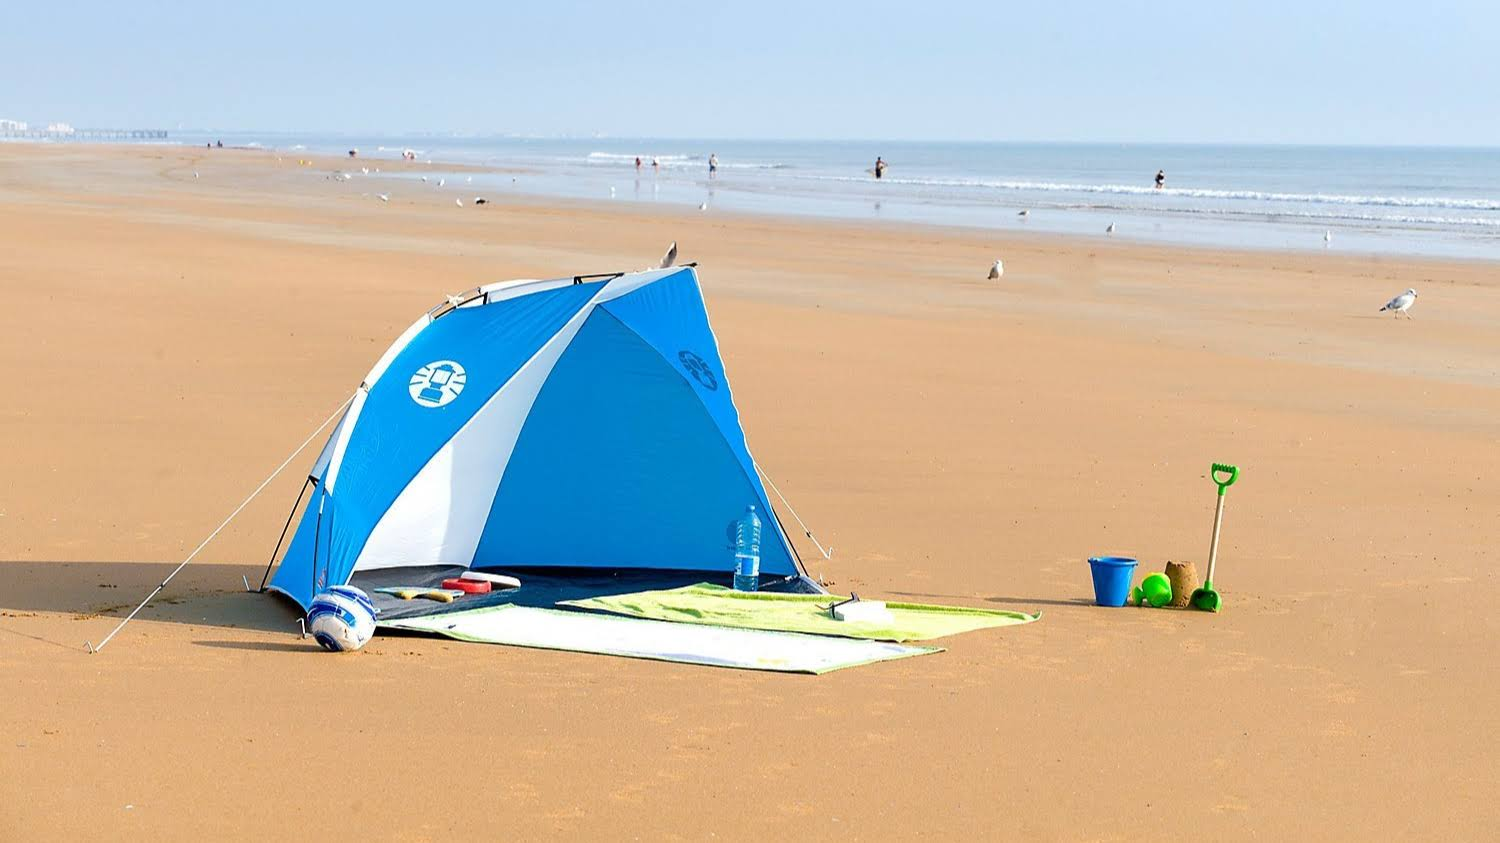 Best beach tents 2020: grab instant shade and protect